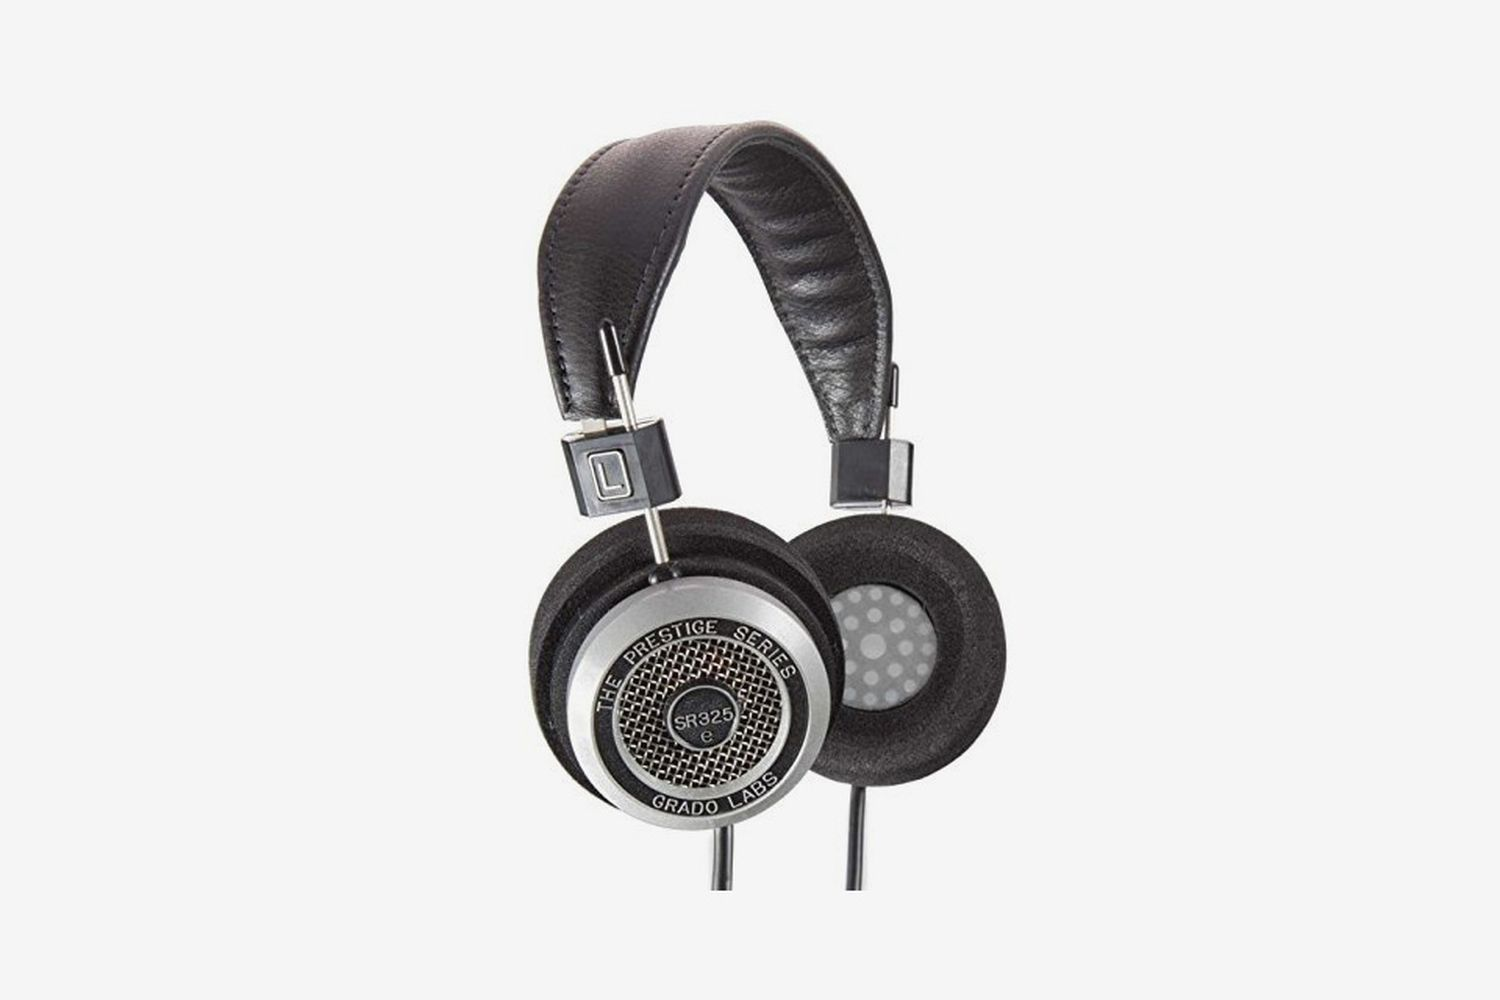 Prestige Series SR325e Headphones